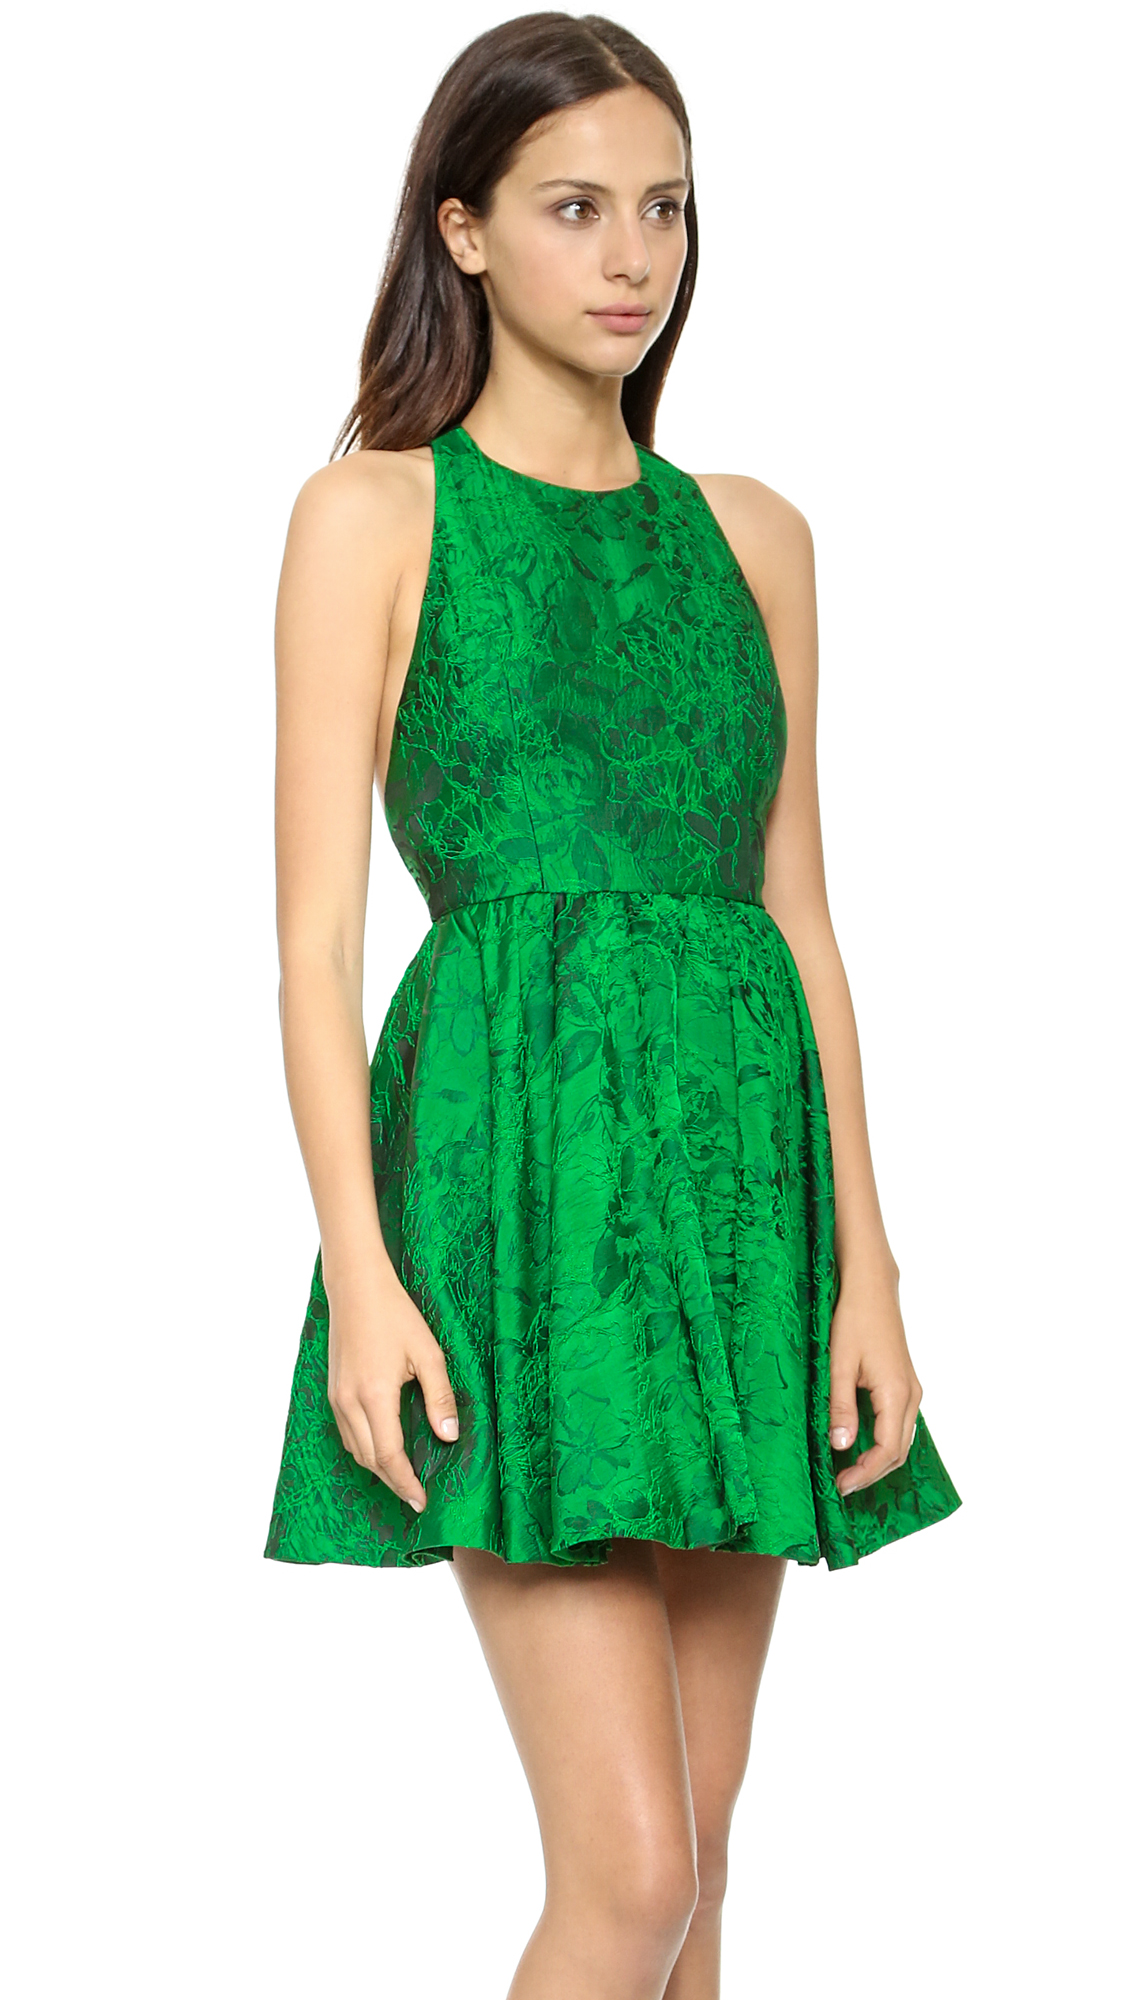 Alice olivia tevin racer back party dress shopbop save up to 25 alice olivia tevin racer back party dress shopbop save up to 25 use code event18 ombrellifo Images